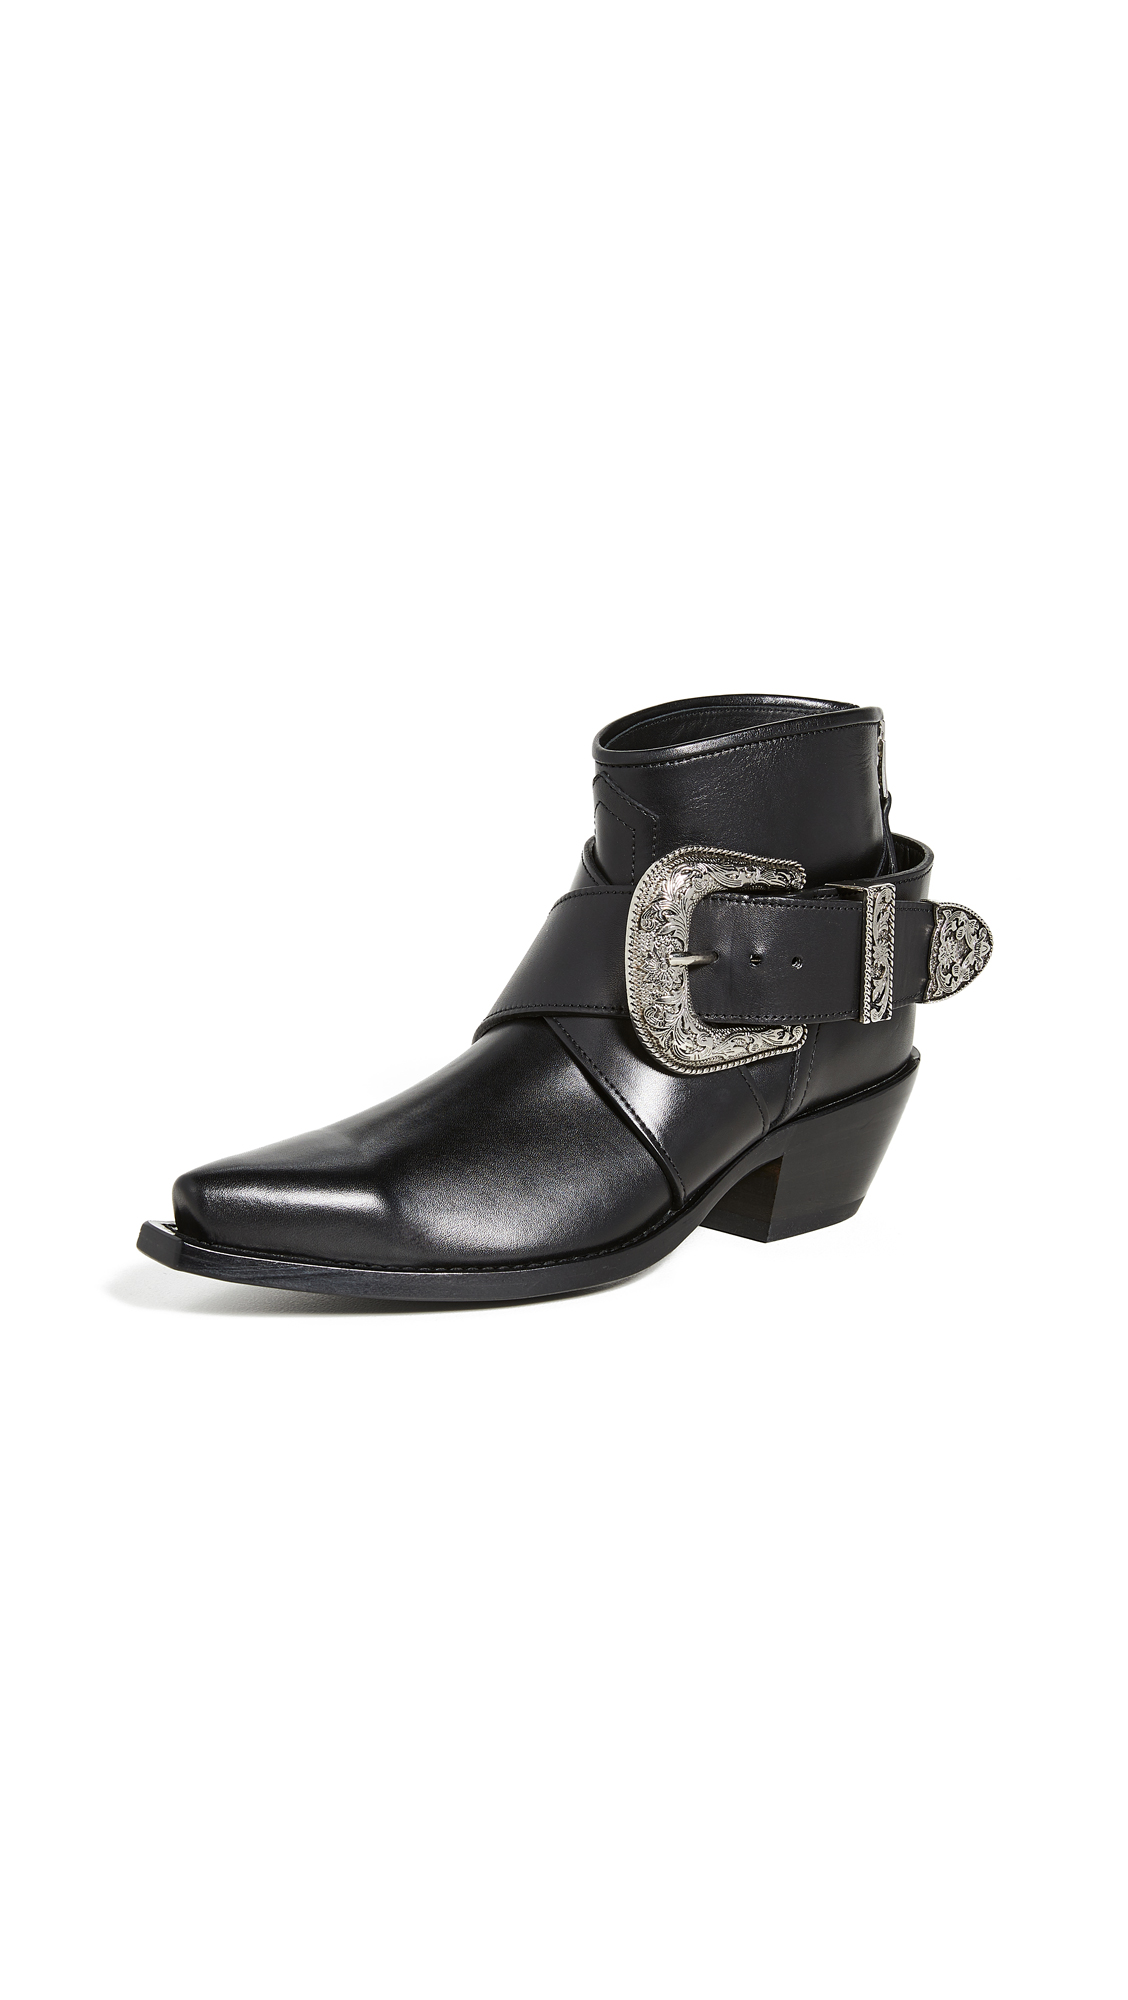 R13 Western Buckle Cowboy Booties - 60% Off Sale